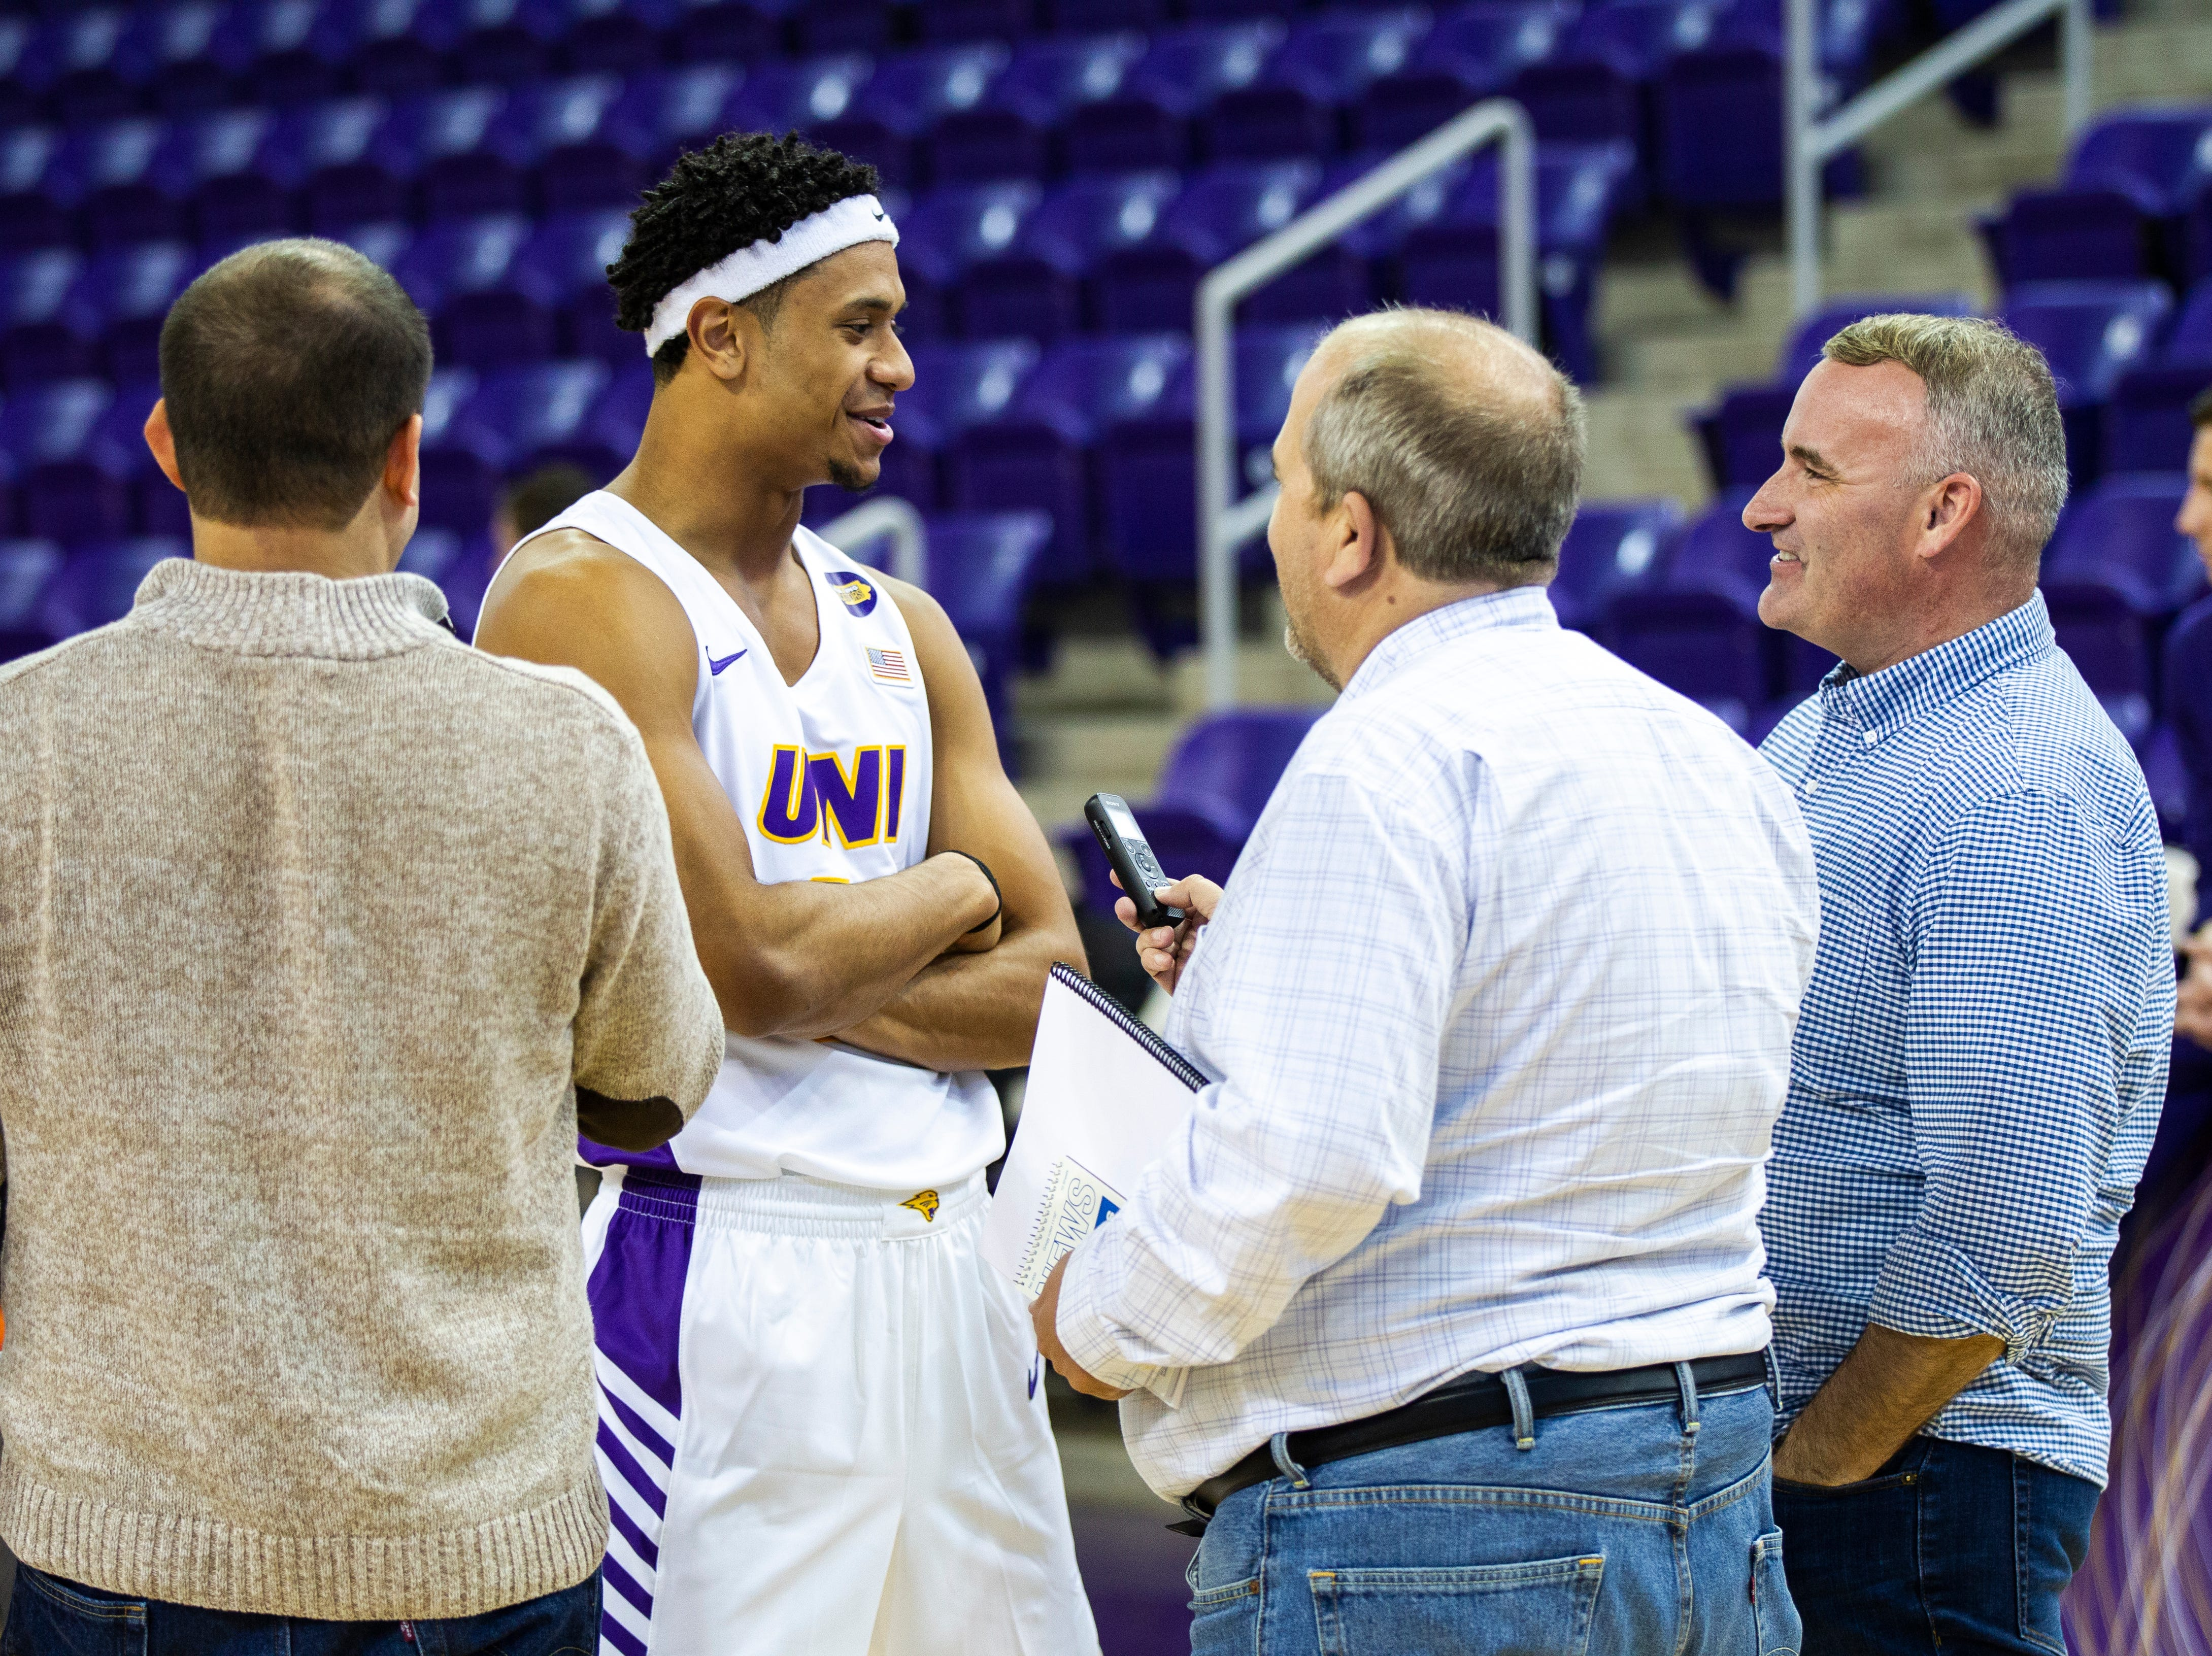 Northern Iowa guard Trae Berhow talks with reporters during Panthers men's basketball media day on Wednesday, Oct. 17, 2018, at the McLeod Center in Cedar Falls.